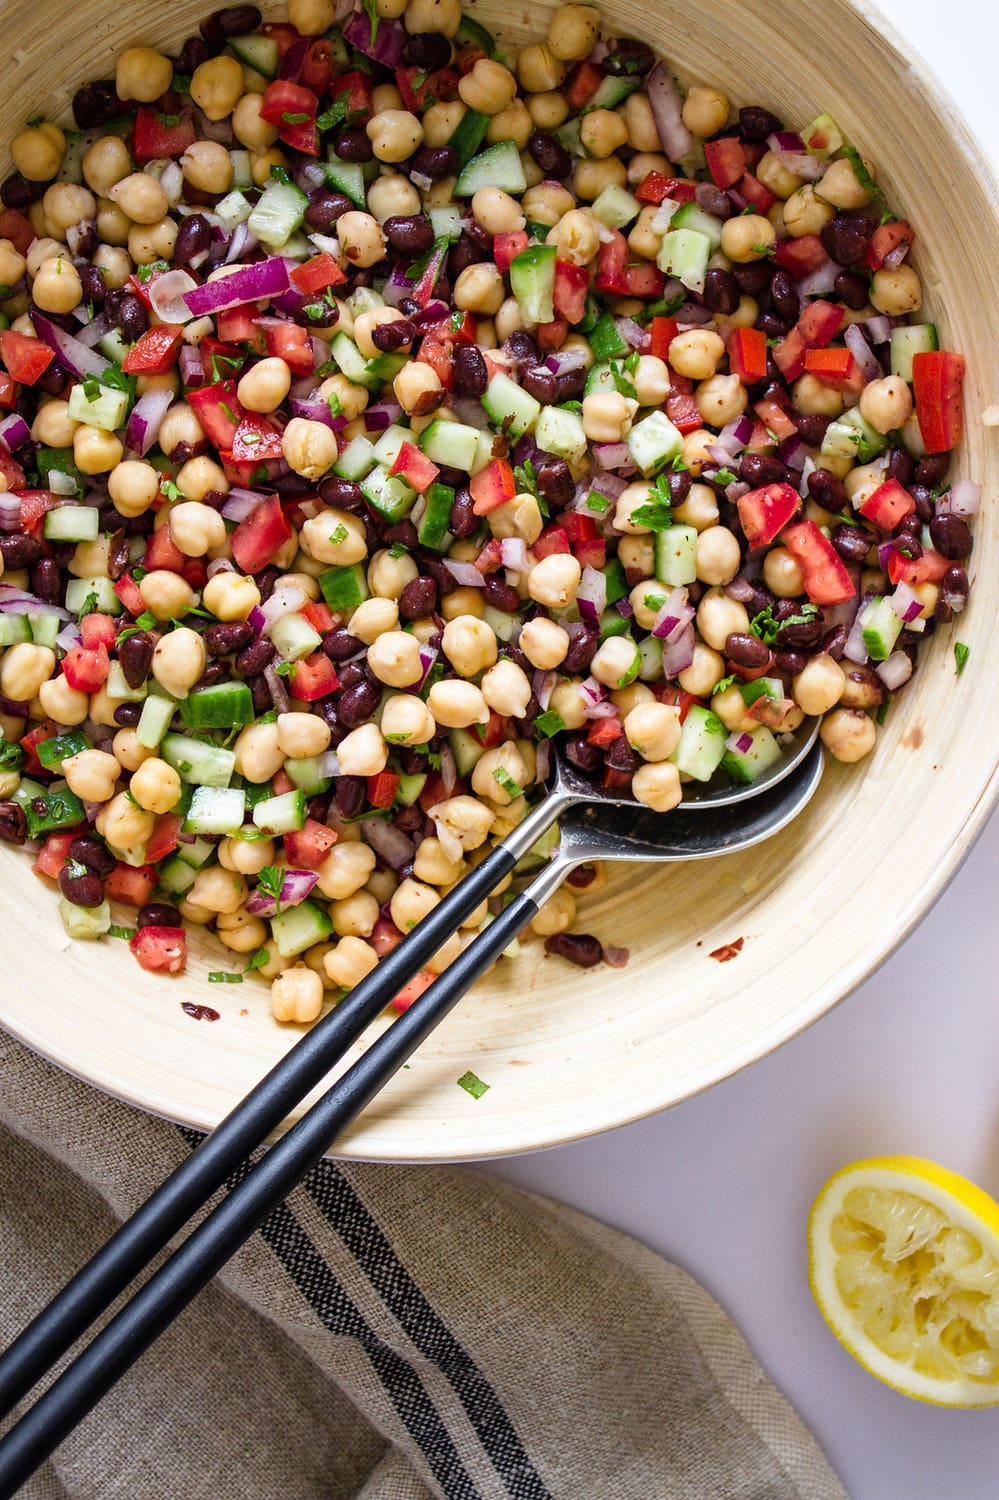 top down view of balela salad just mixed together in a large bamboo mixing bowl with silver utensils with black handles